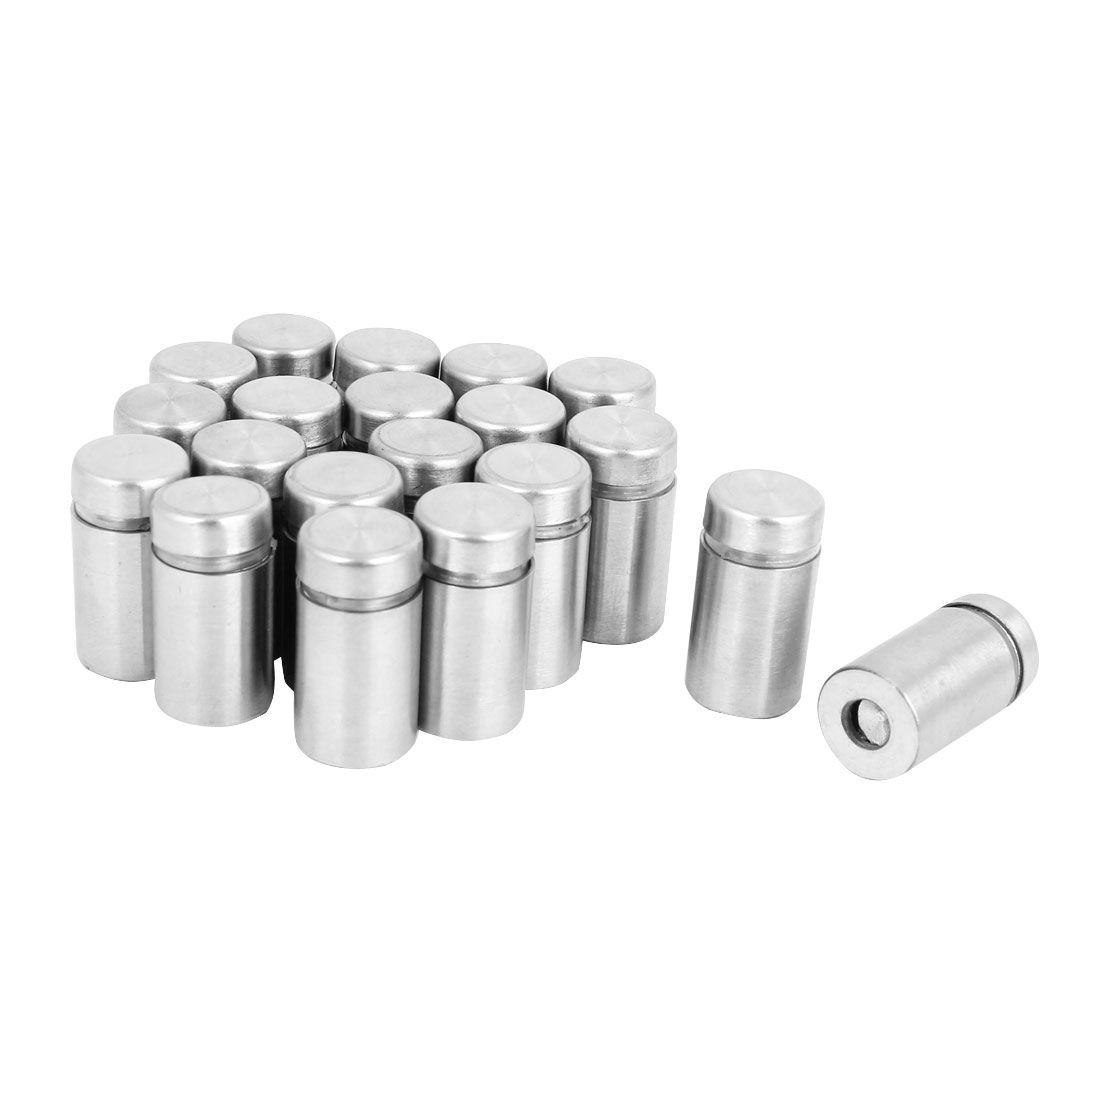 20 Pcs Stainless Steel Advertising Nails Glass Wall Connector Standoff 12mmx25mm